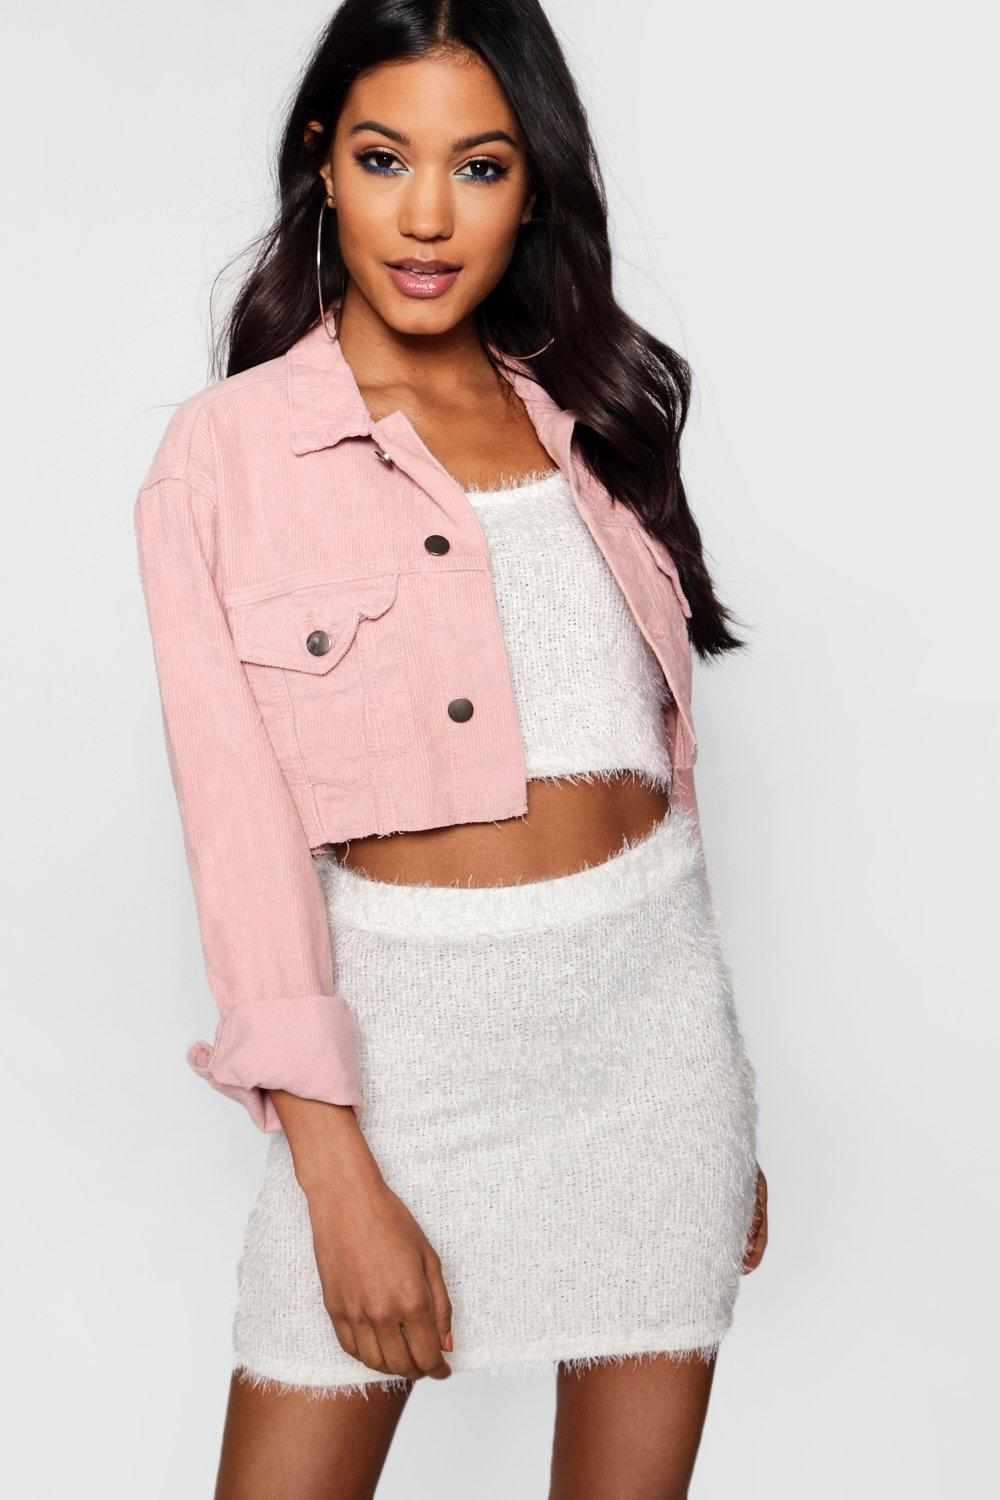 Cord Jacket Cord Denim Crop Cord Jacket Denim pink Crop Denim Crop pink Jacket wXZqPSf